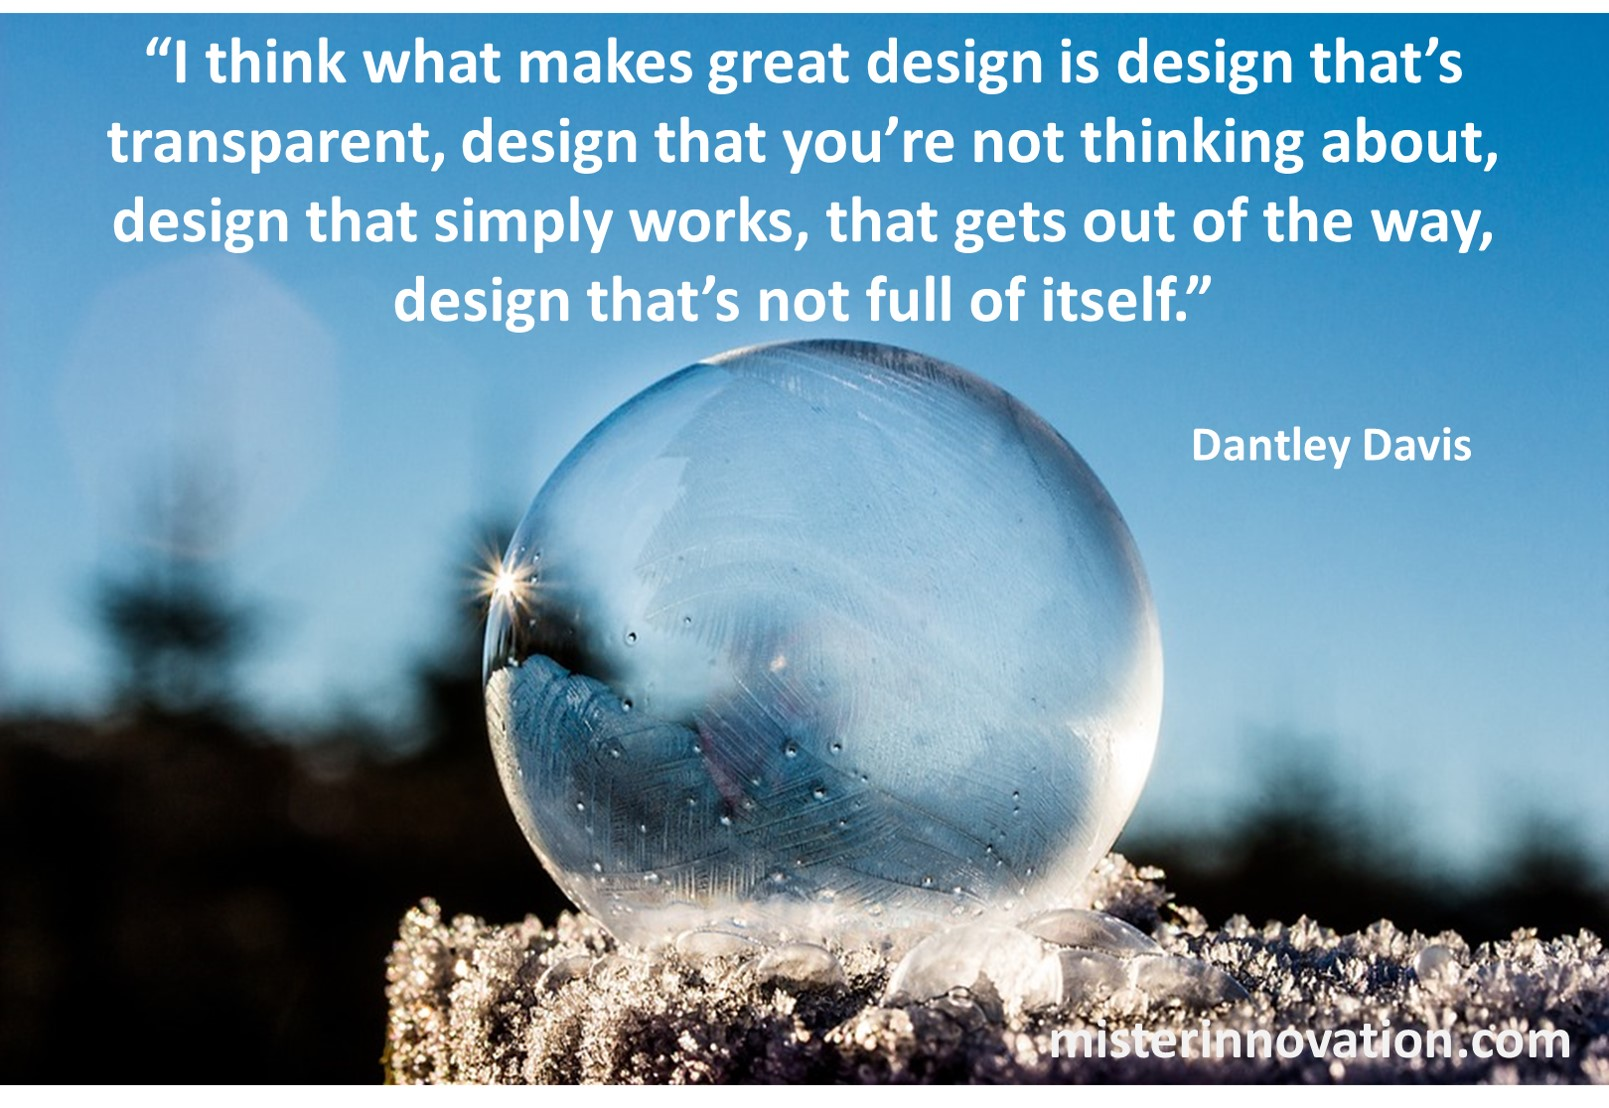 Dantley Davis Quote on Transparent Design